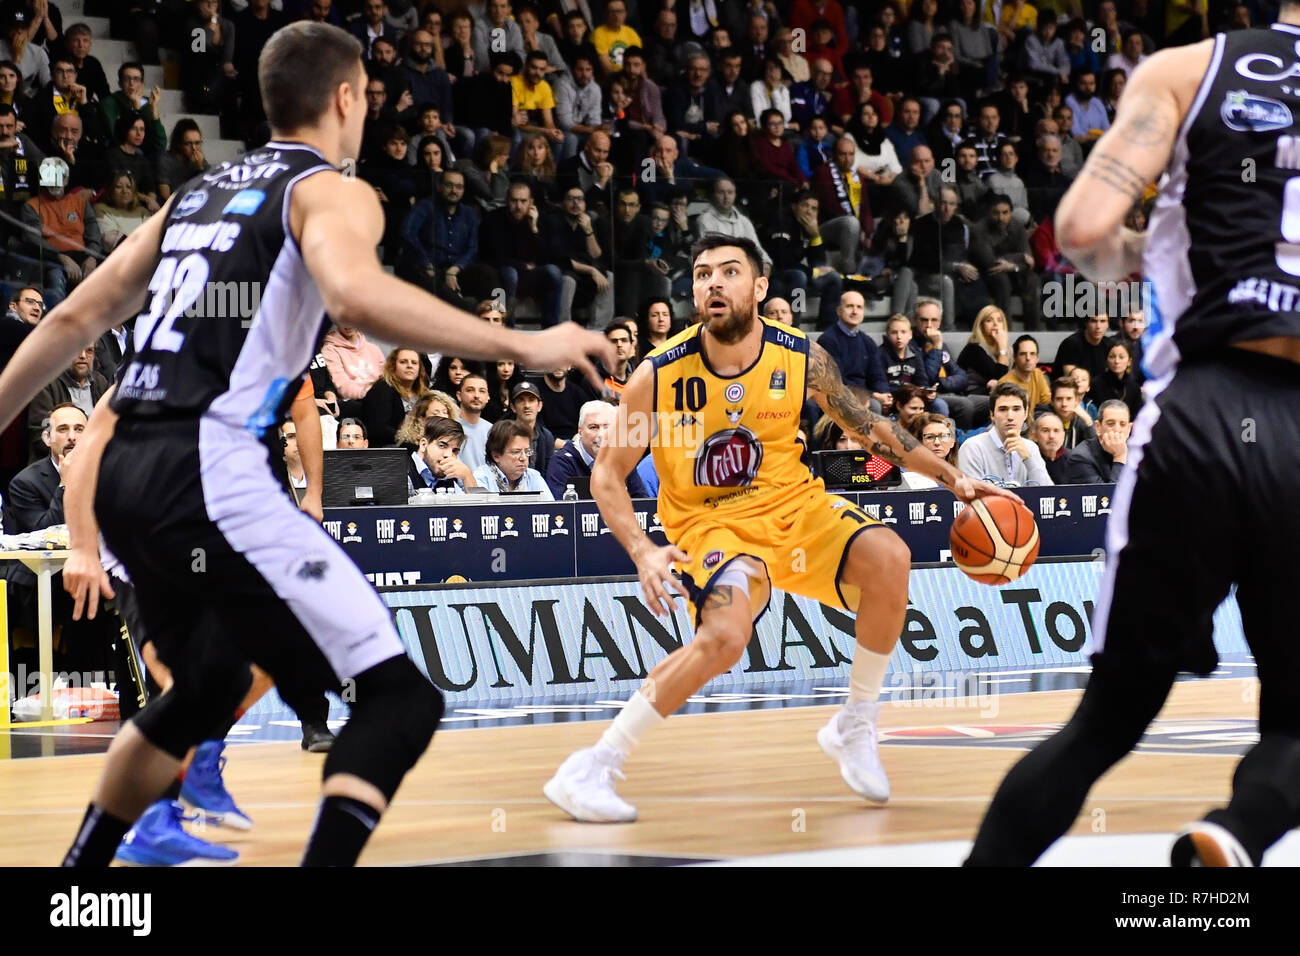 Turin, Italy. 8th Dec 2018. Carlos Delfino (Auxilium Fiat Torino) during the LEGA BASKET SERIE A 2018/19 basketball match between FIAT AUXILIUM TORINO vs DOLOMITI TRENTO at PalaVela on 8th Dicember, 2018 in Turin, Italy. Credit: FABIO PETROSINO/Alamy Live News - Stock Image